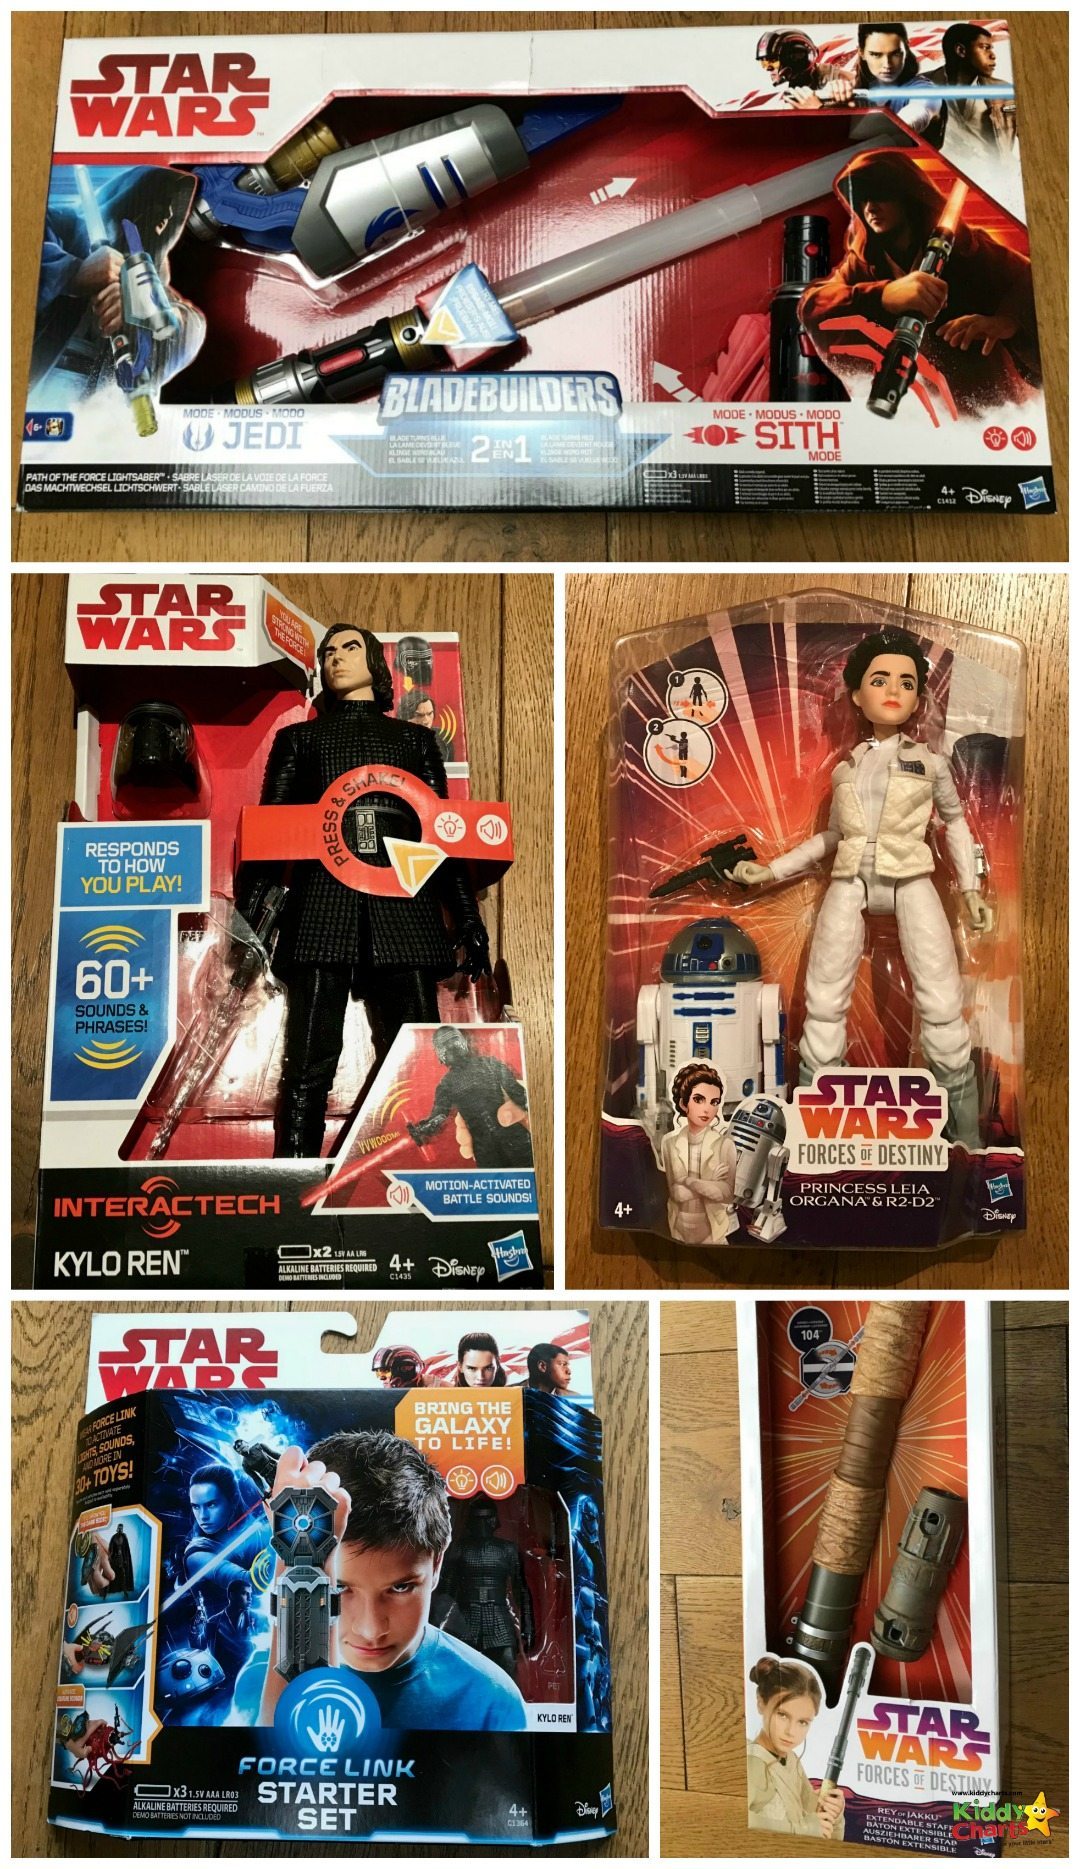 We have a Star Wars Last Jedi Toys review for you - and here they all are boxed and ready to go!